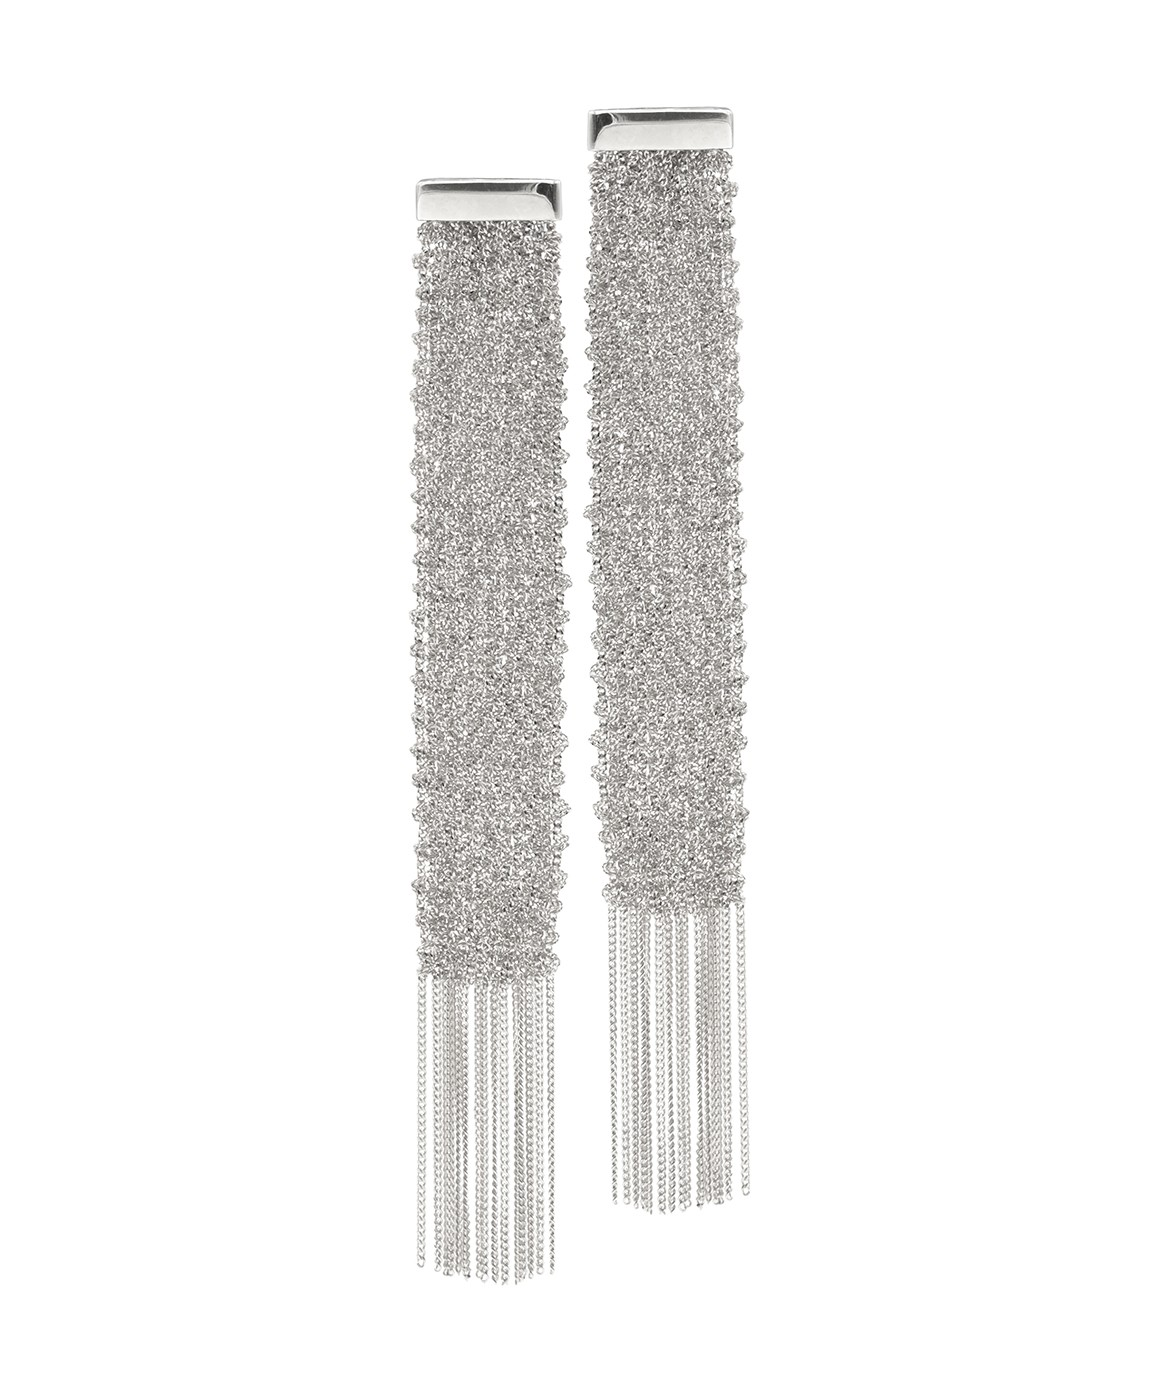 FLUTE Earrings in Sterling Silver Rhodium plated